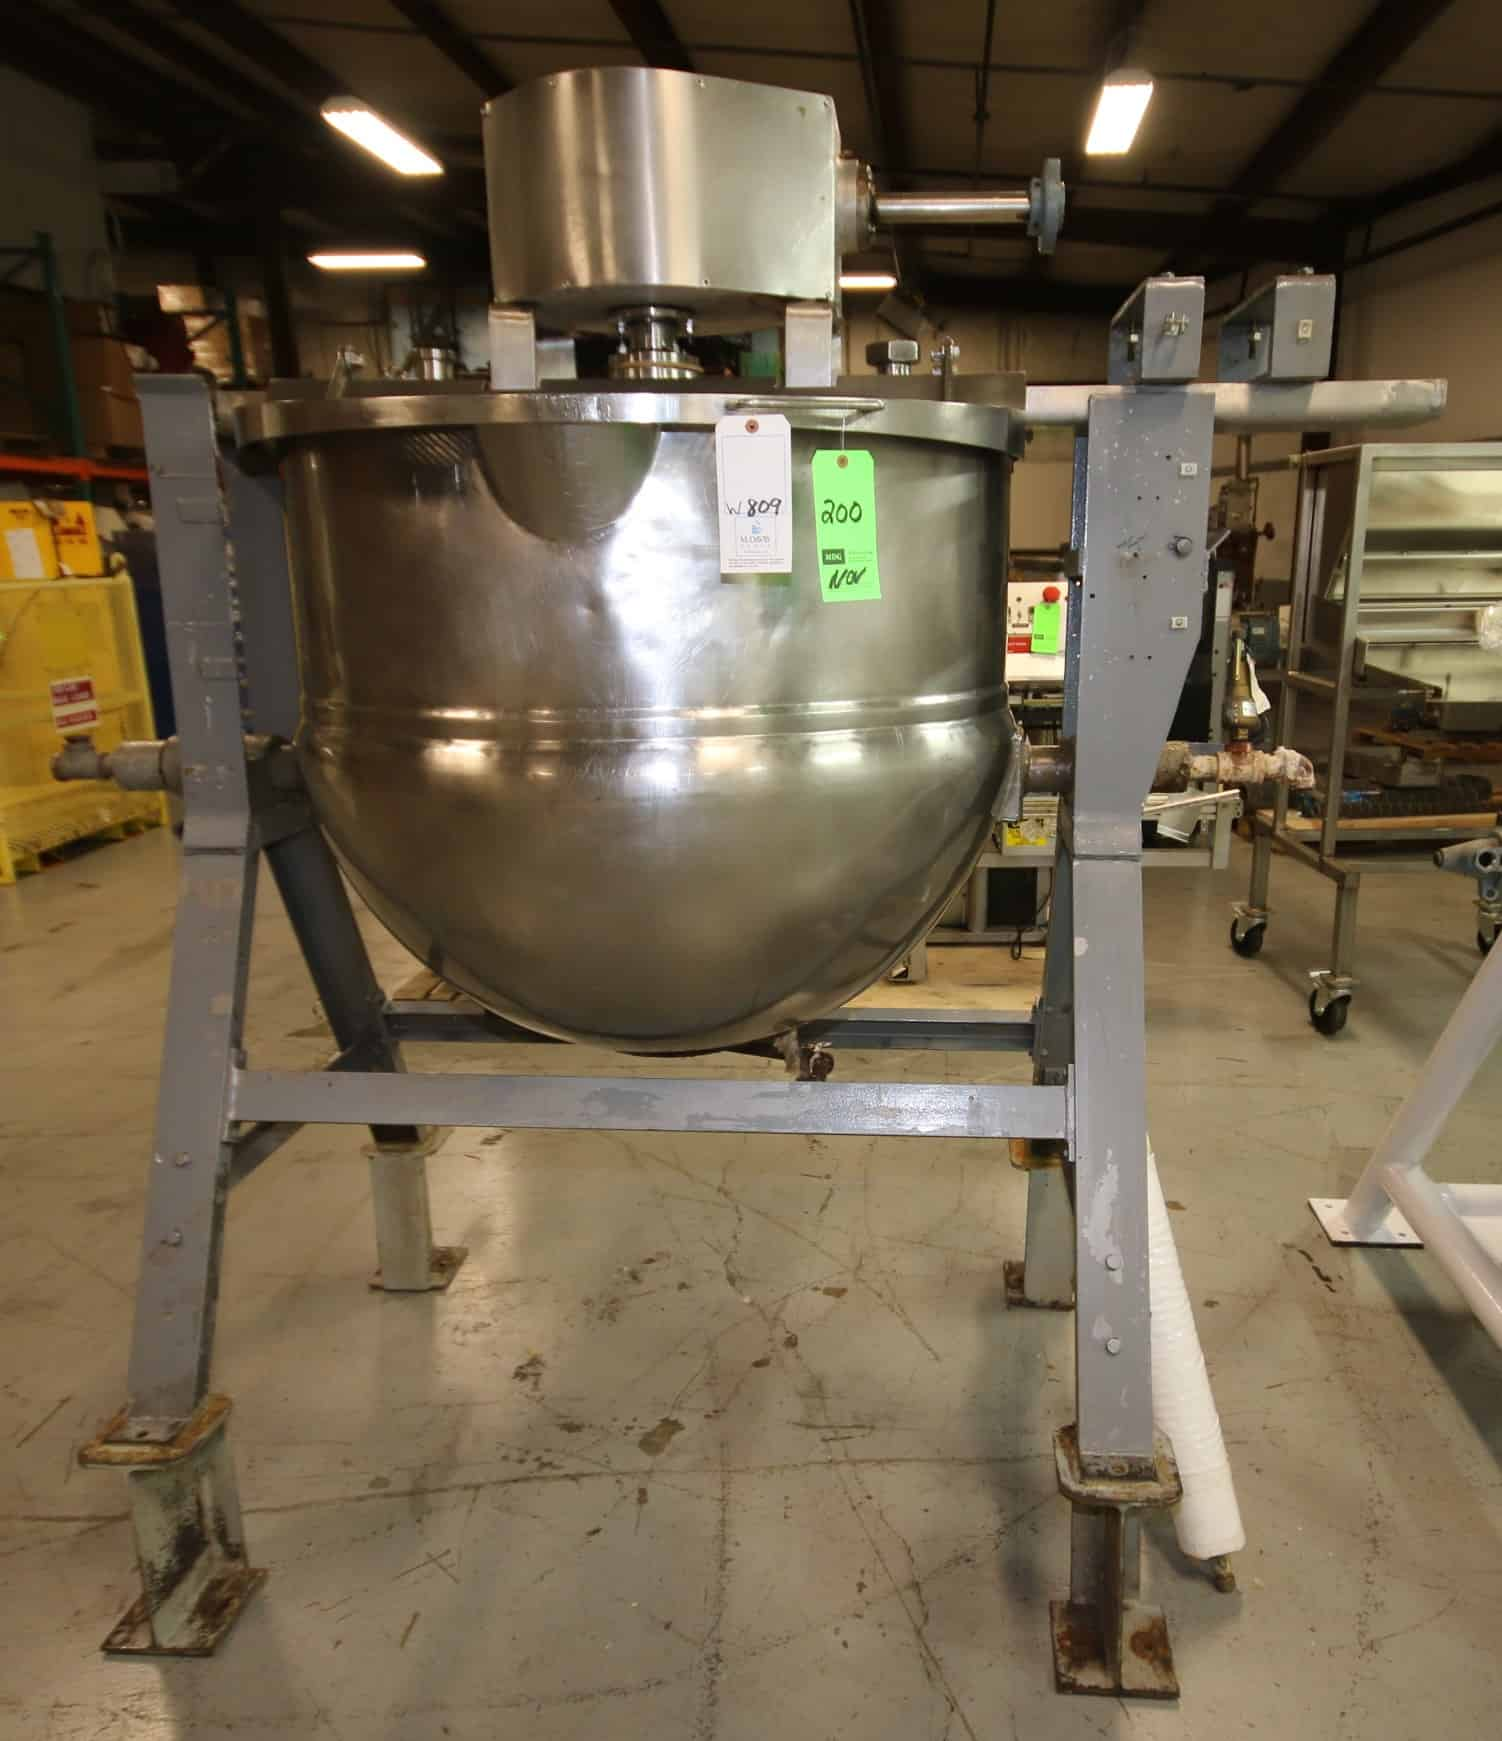 Lee 150 Gal. Steam Jacketed S/S Kettle, S/N A1133 with Bottom Side Scrape Surface Agitator with 3 hp / 1750 RPM Drive Motor, 208/230 - 460 V, 3 Phase with Hinged Lids and Tilt Capability, Mounted on Steel Frame, BN 1230, Jackete 90 psi @ 350 Degrees F, (W809)